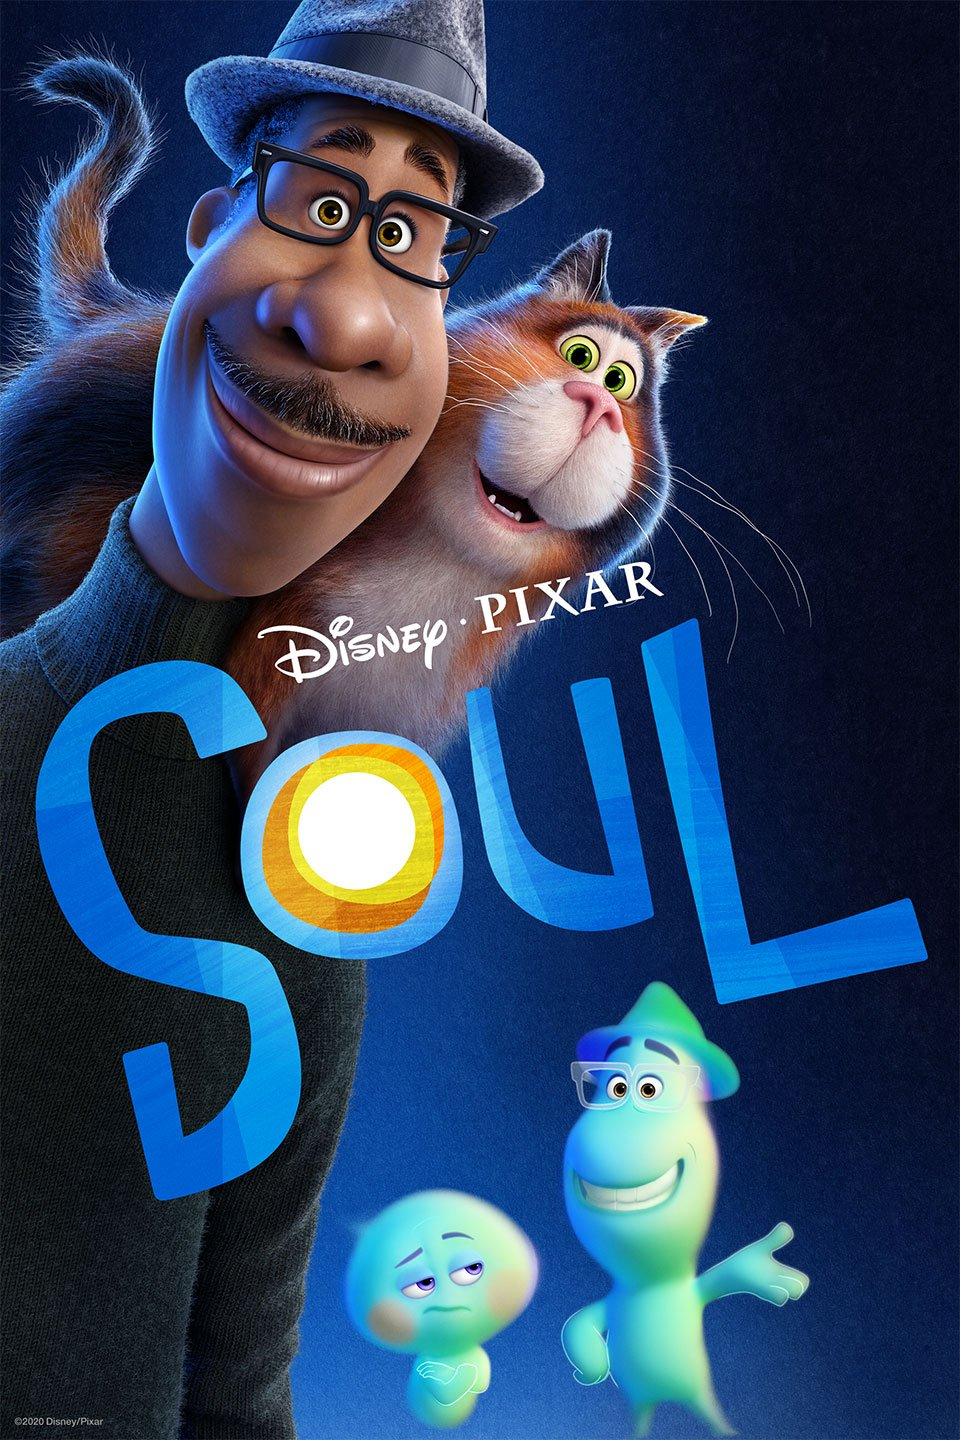 Jamie Foxx leads an all-star cast in this hilarious, heart-filled adventure. Disney and Pixar's Soul introduces Joe, who lands the gig of his life at the best jazz club in town.